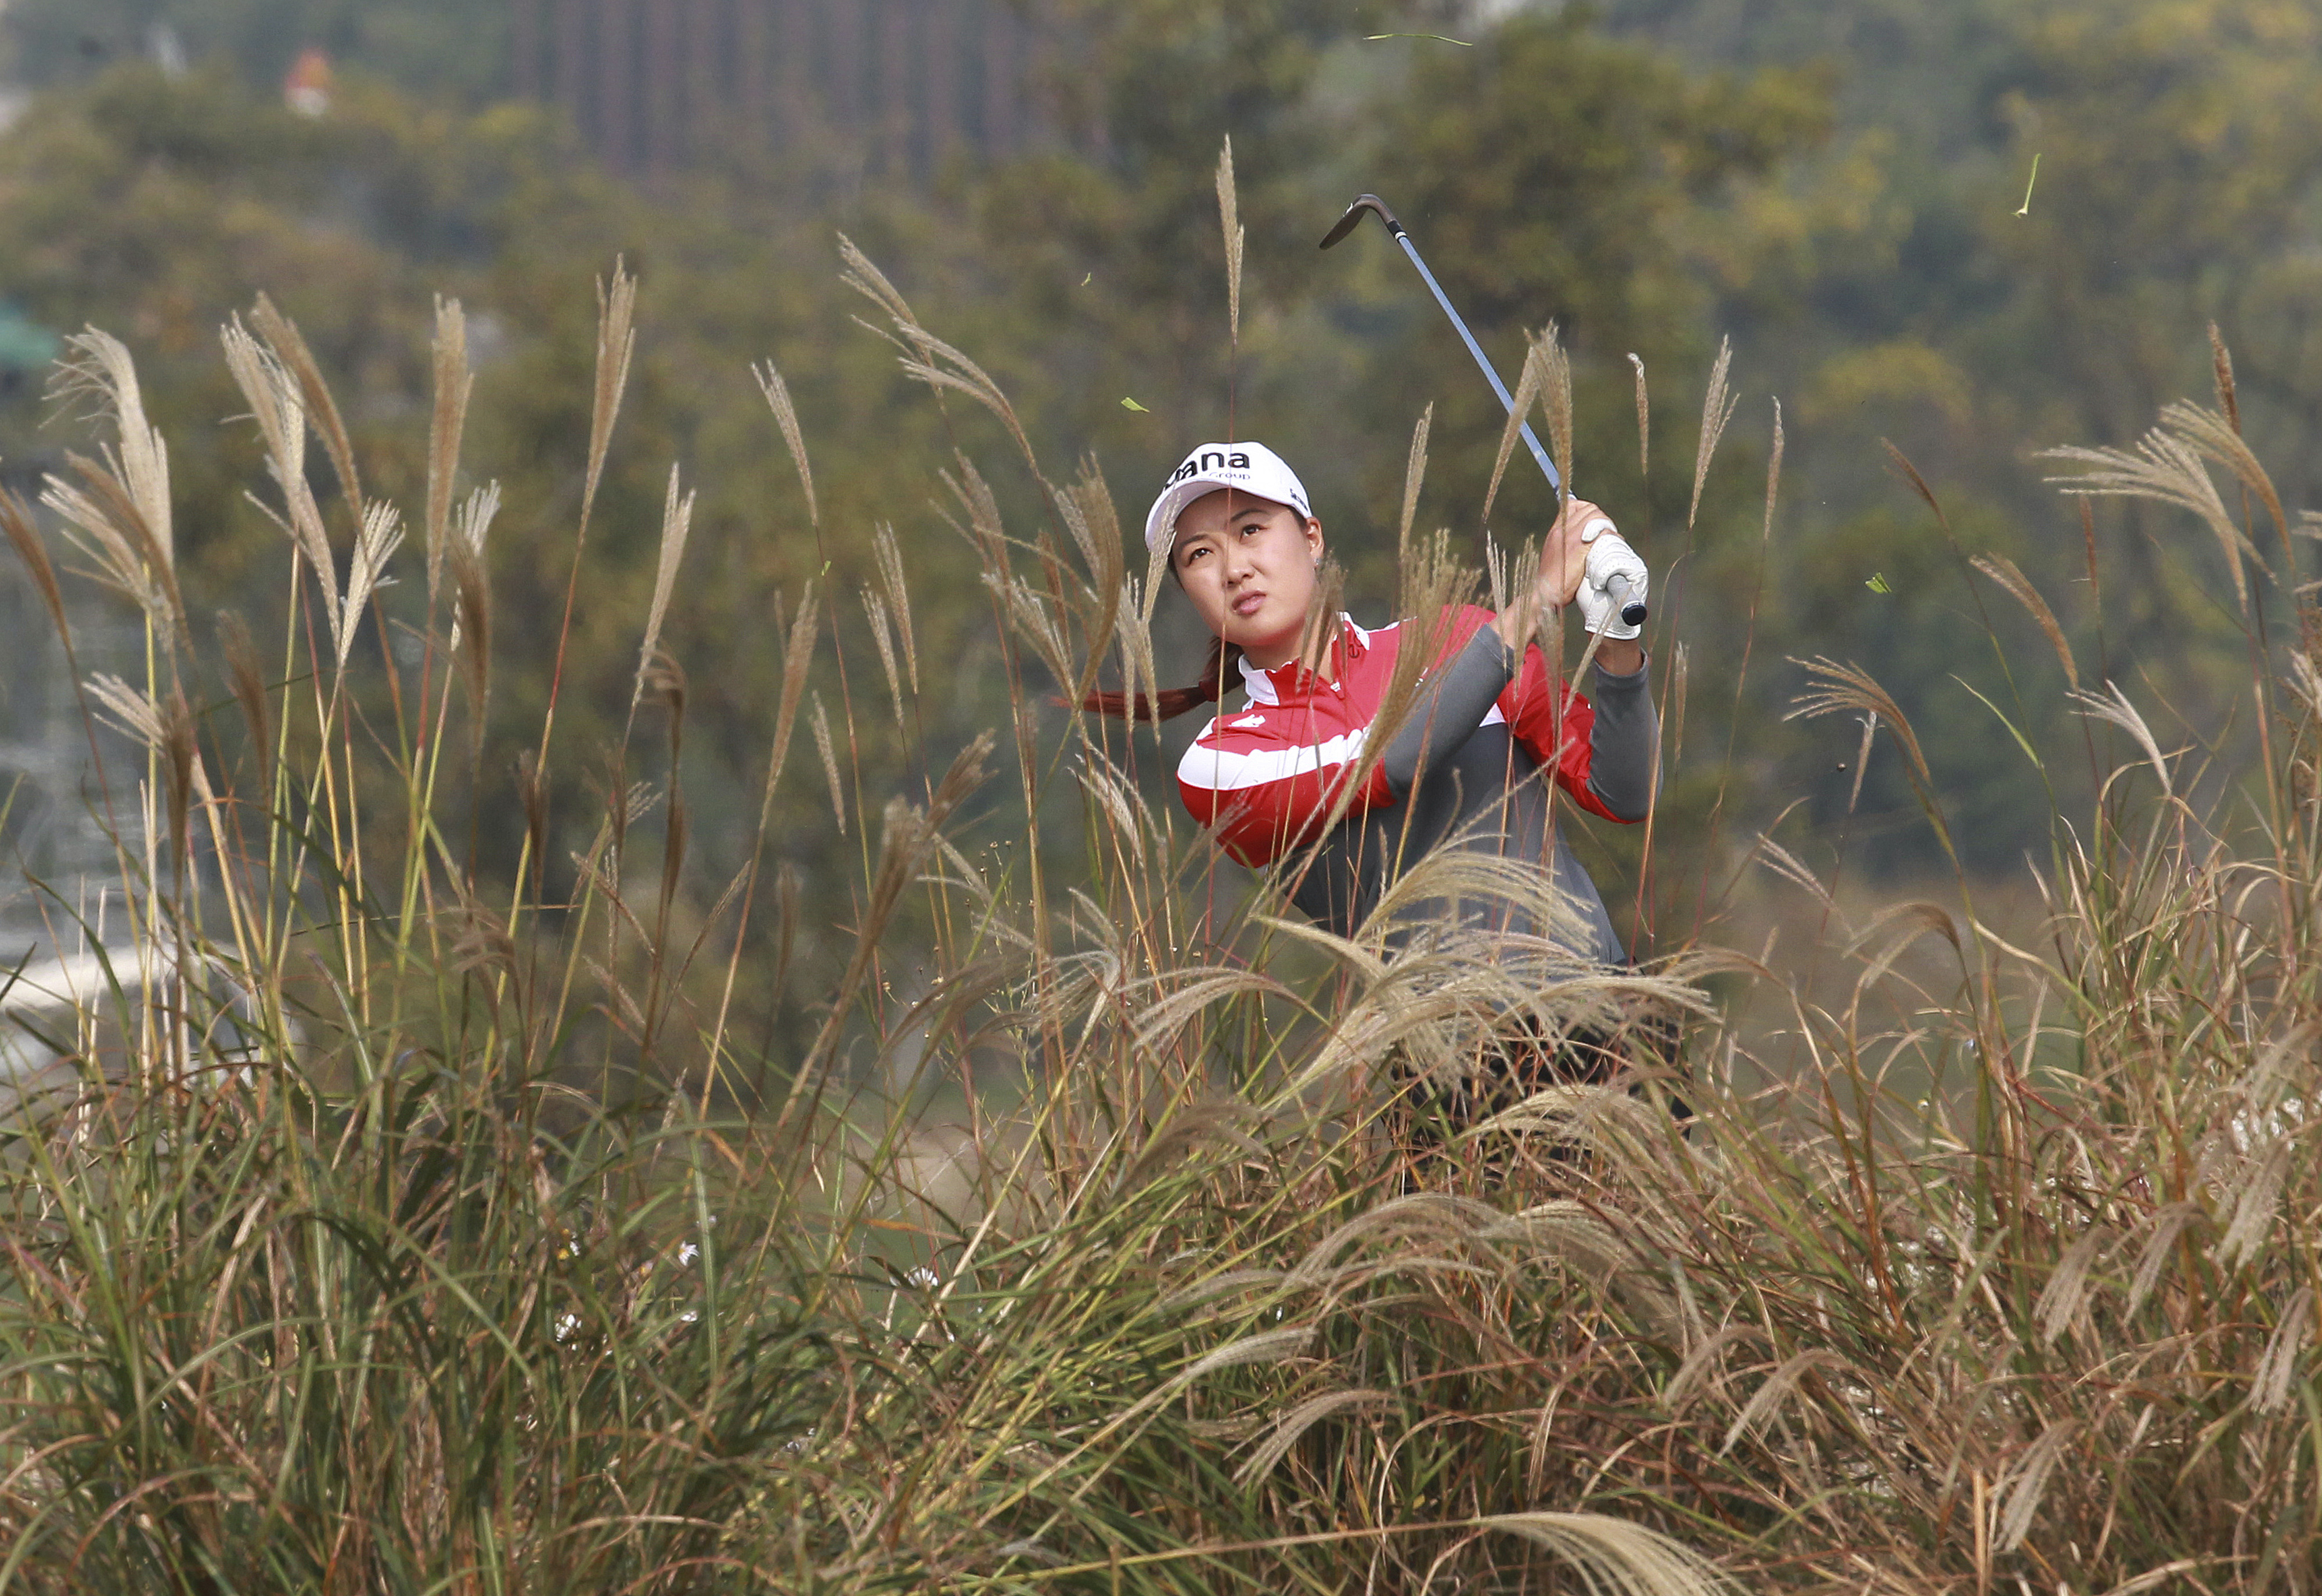 Minjee Lee of Australia watches her shot on the 6th hole during the second round of the LPGA KEB HanaBank Championship 2016 tournament at Sky72 Golf Club in Incheon, South Korea, Friday, Oct. 14, 2016. (AP Photo/Ahn Young-joon)